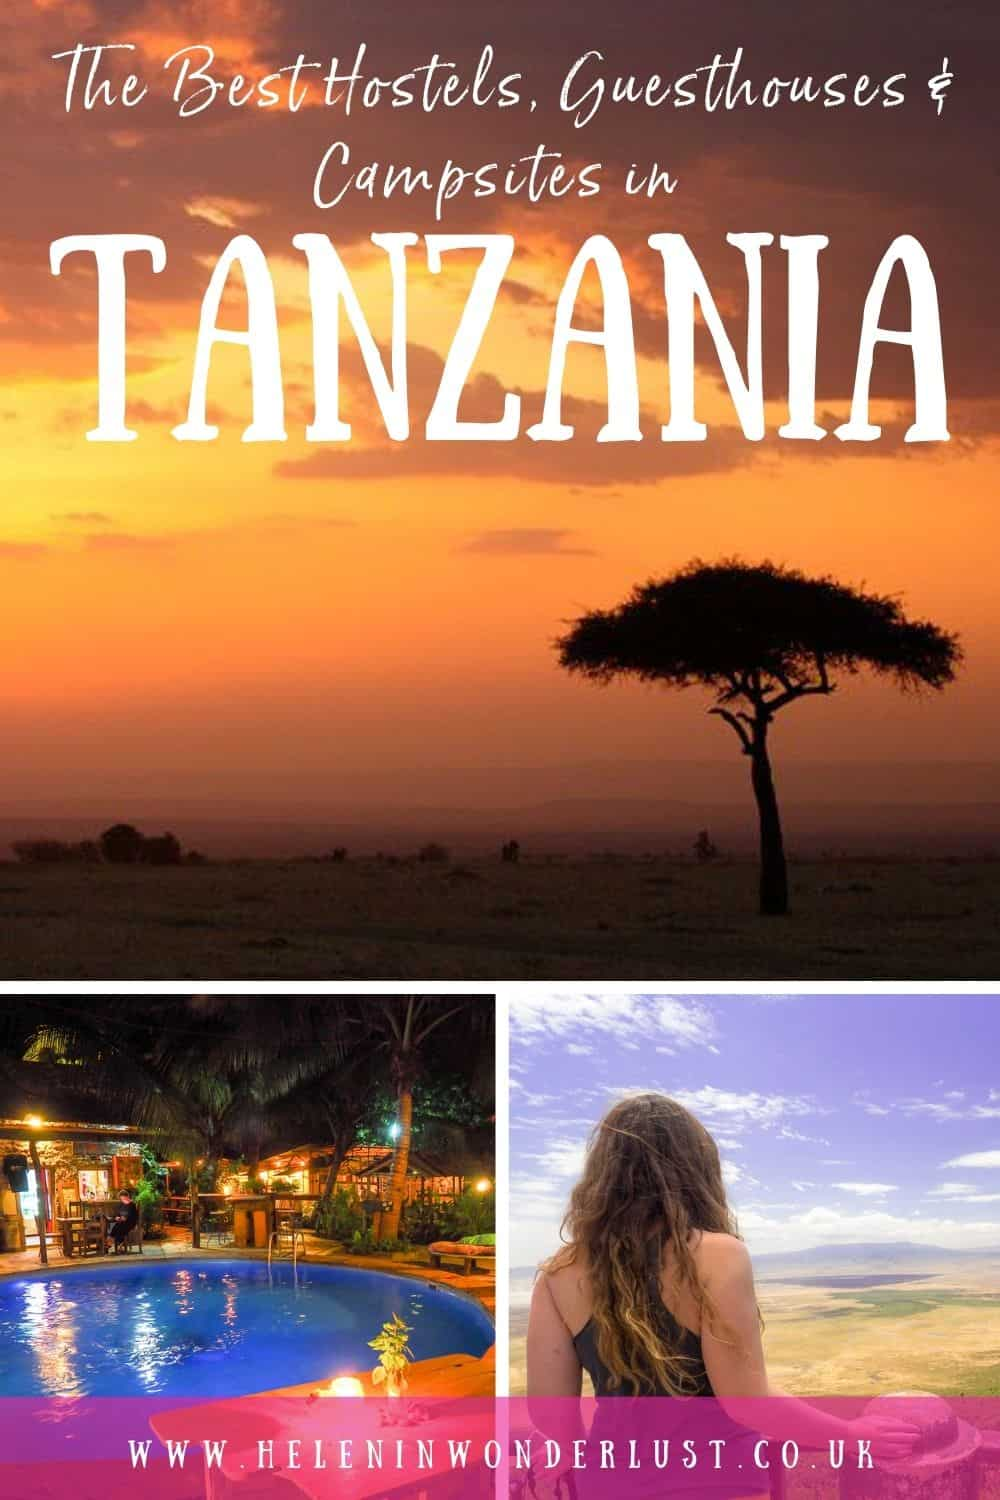 The Best Hostels, Guesthouses & Campsites in Tanzania